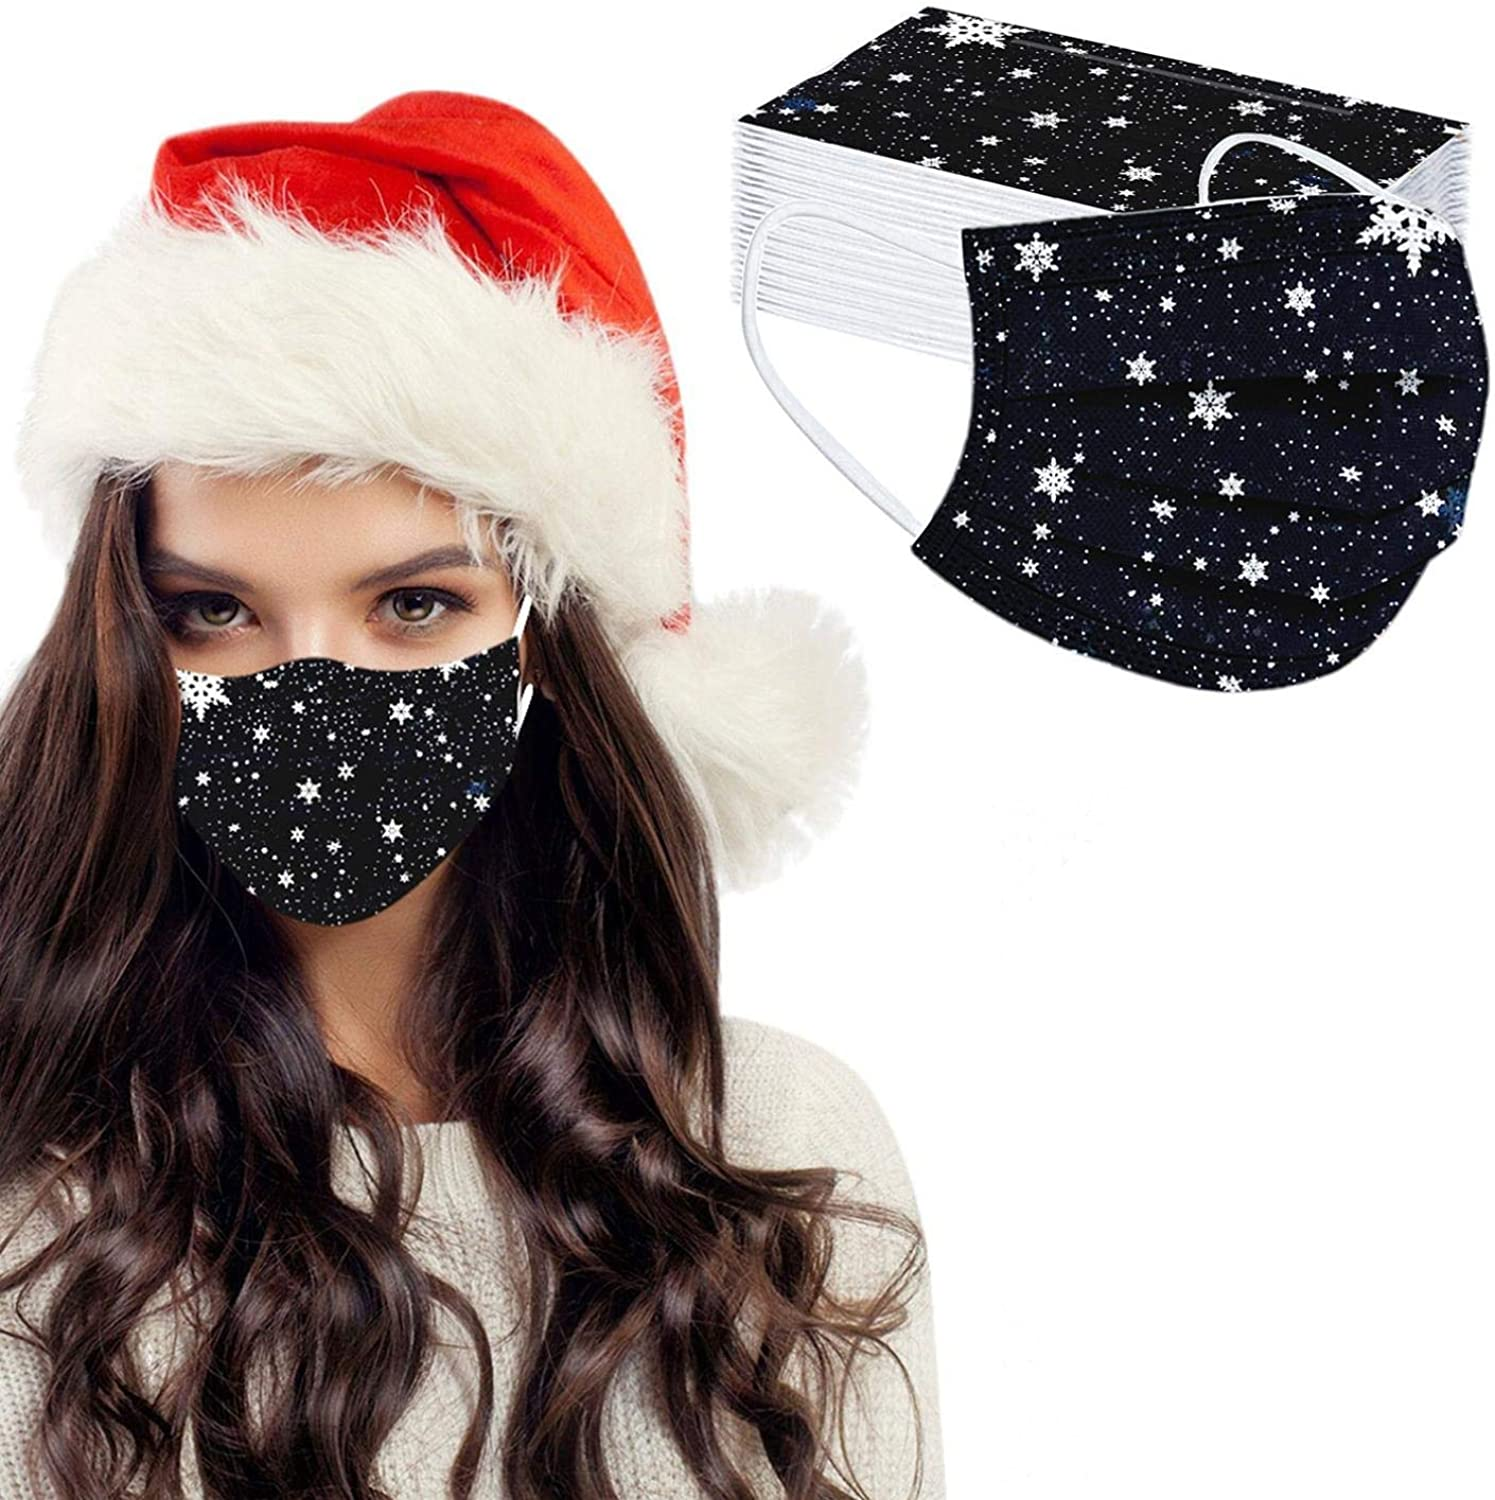 【USA in Stock 】 50 PCS Adults Face Masks Christmas Element Pattern Disposable Face Covering Cloth Face Protection for Women and Men, Fashion Unisex Outdoor Breathable Industrial Ear Loop Face Fabric